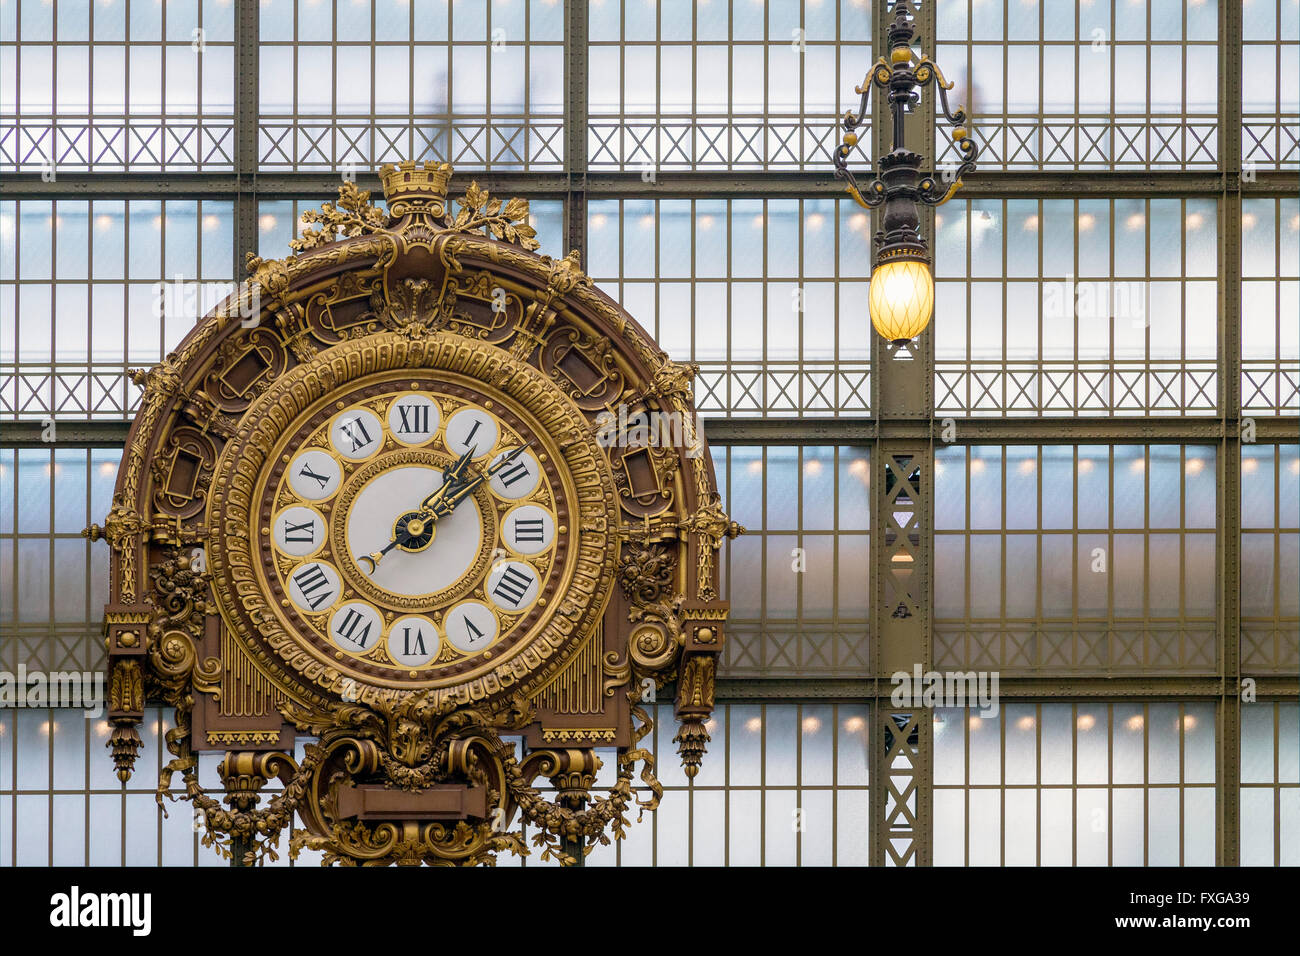 The Great Clock, interior of Musee D'Orsay Art Gallery, Paris, France, Europe - Stock Image